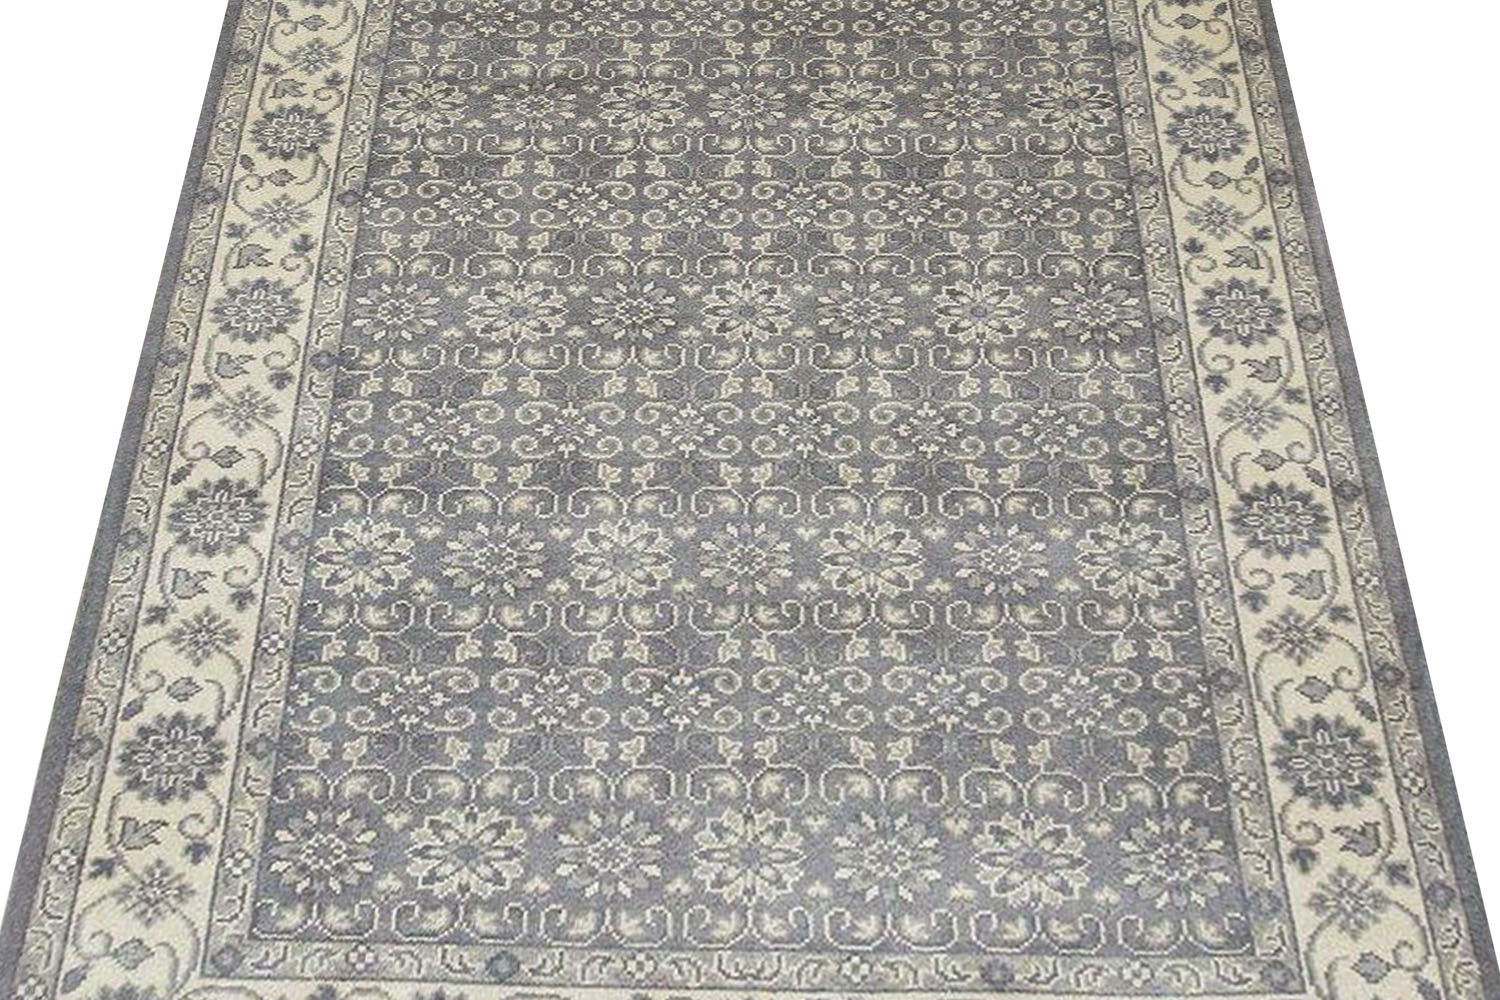 Buy Gray Anatomy Handknotted Wool Area Rug In Monochrome